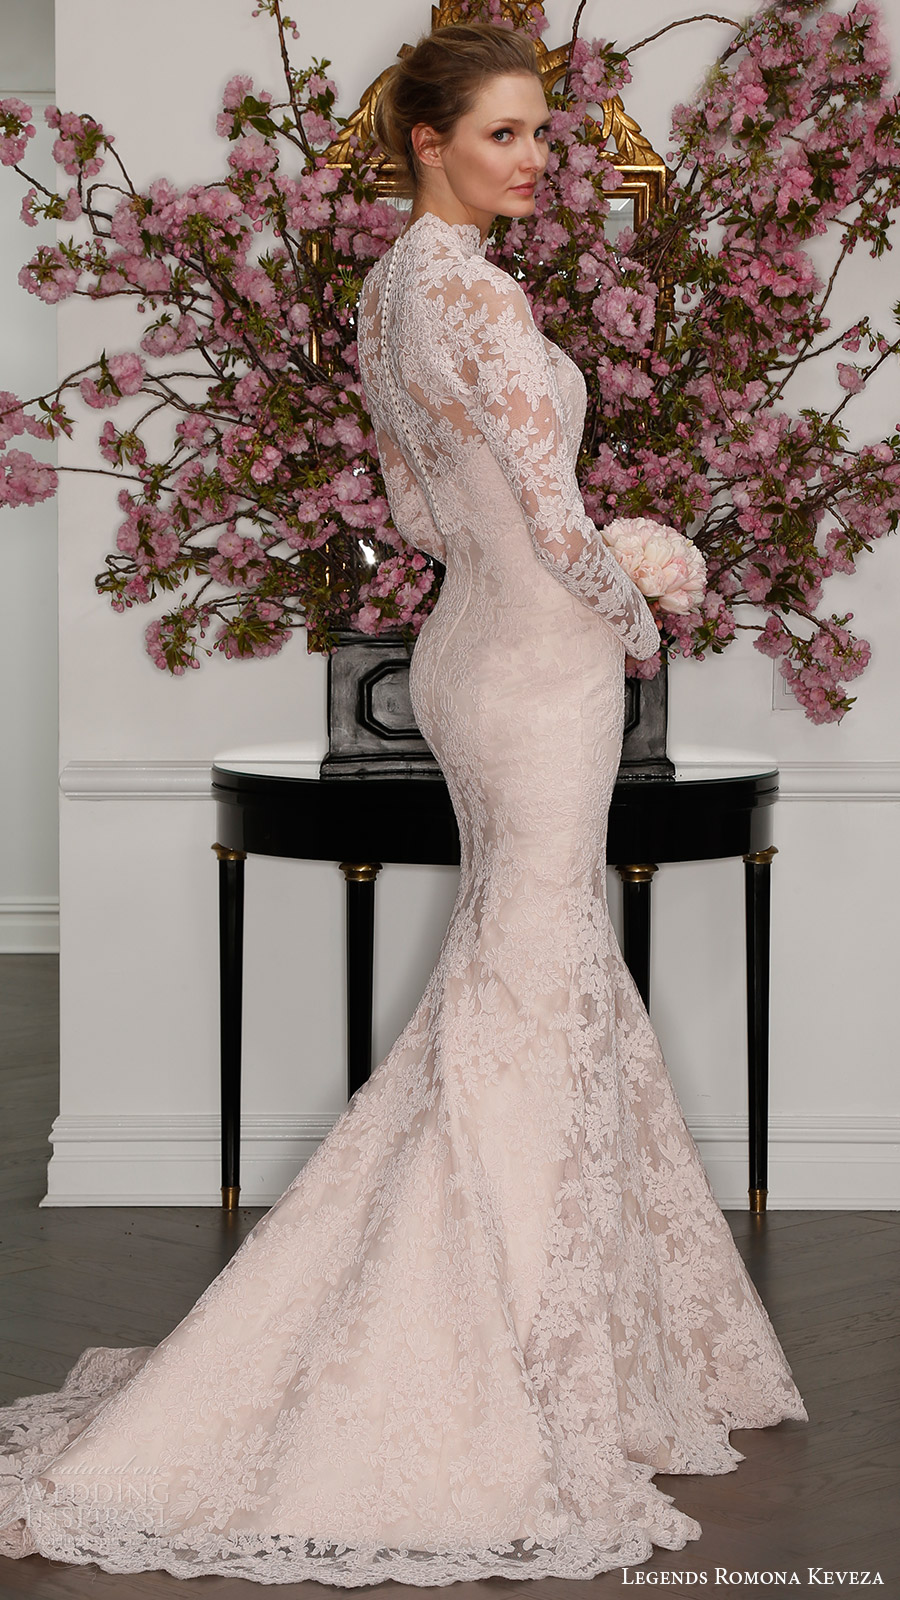 legends romona keveza bridal spring 2017 strapless sweetheart lace trumpet wedding dress (l7125) bv train blush color illusion long sleeve high neck blouse